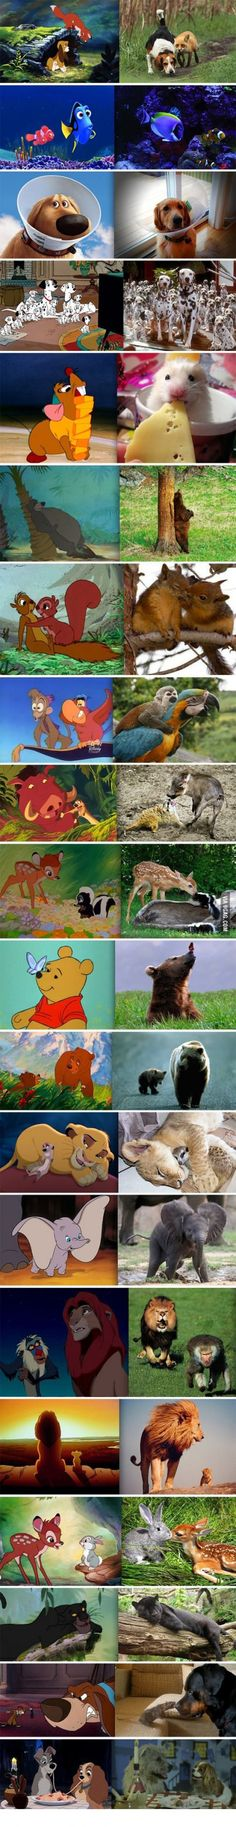 Classic Disney Movies In Real Life.